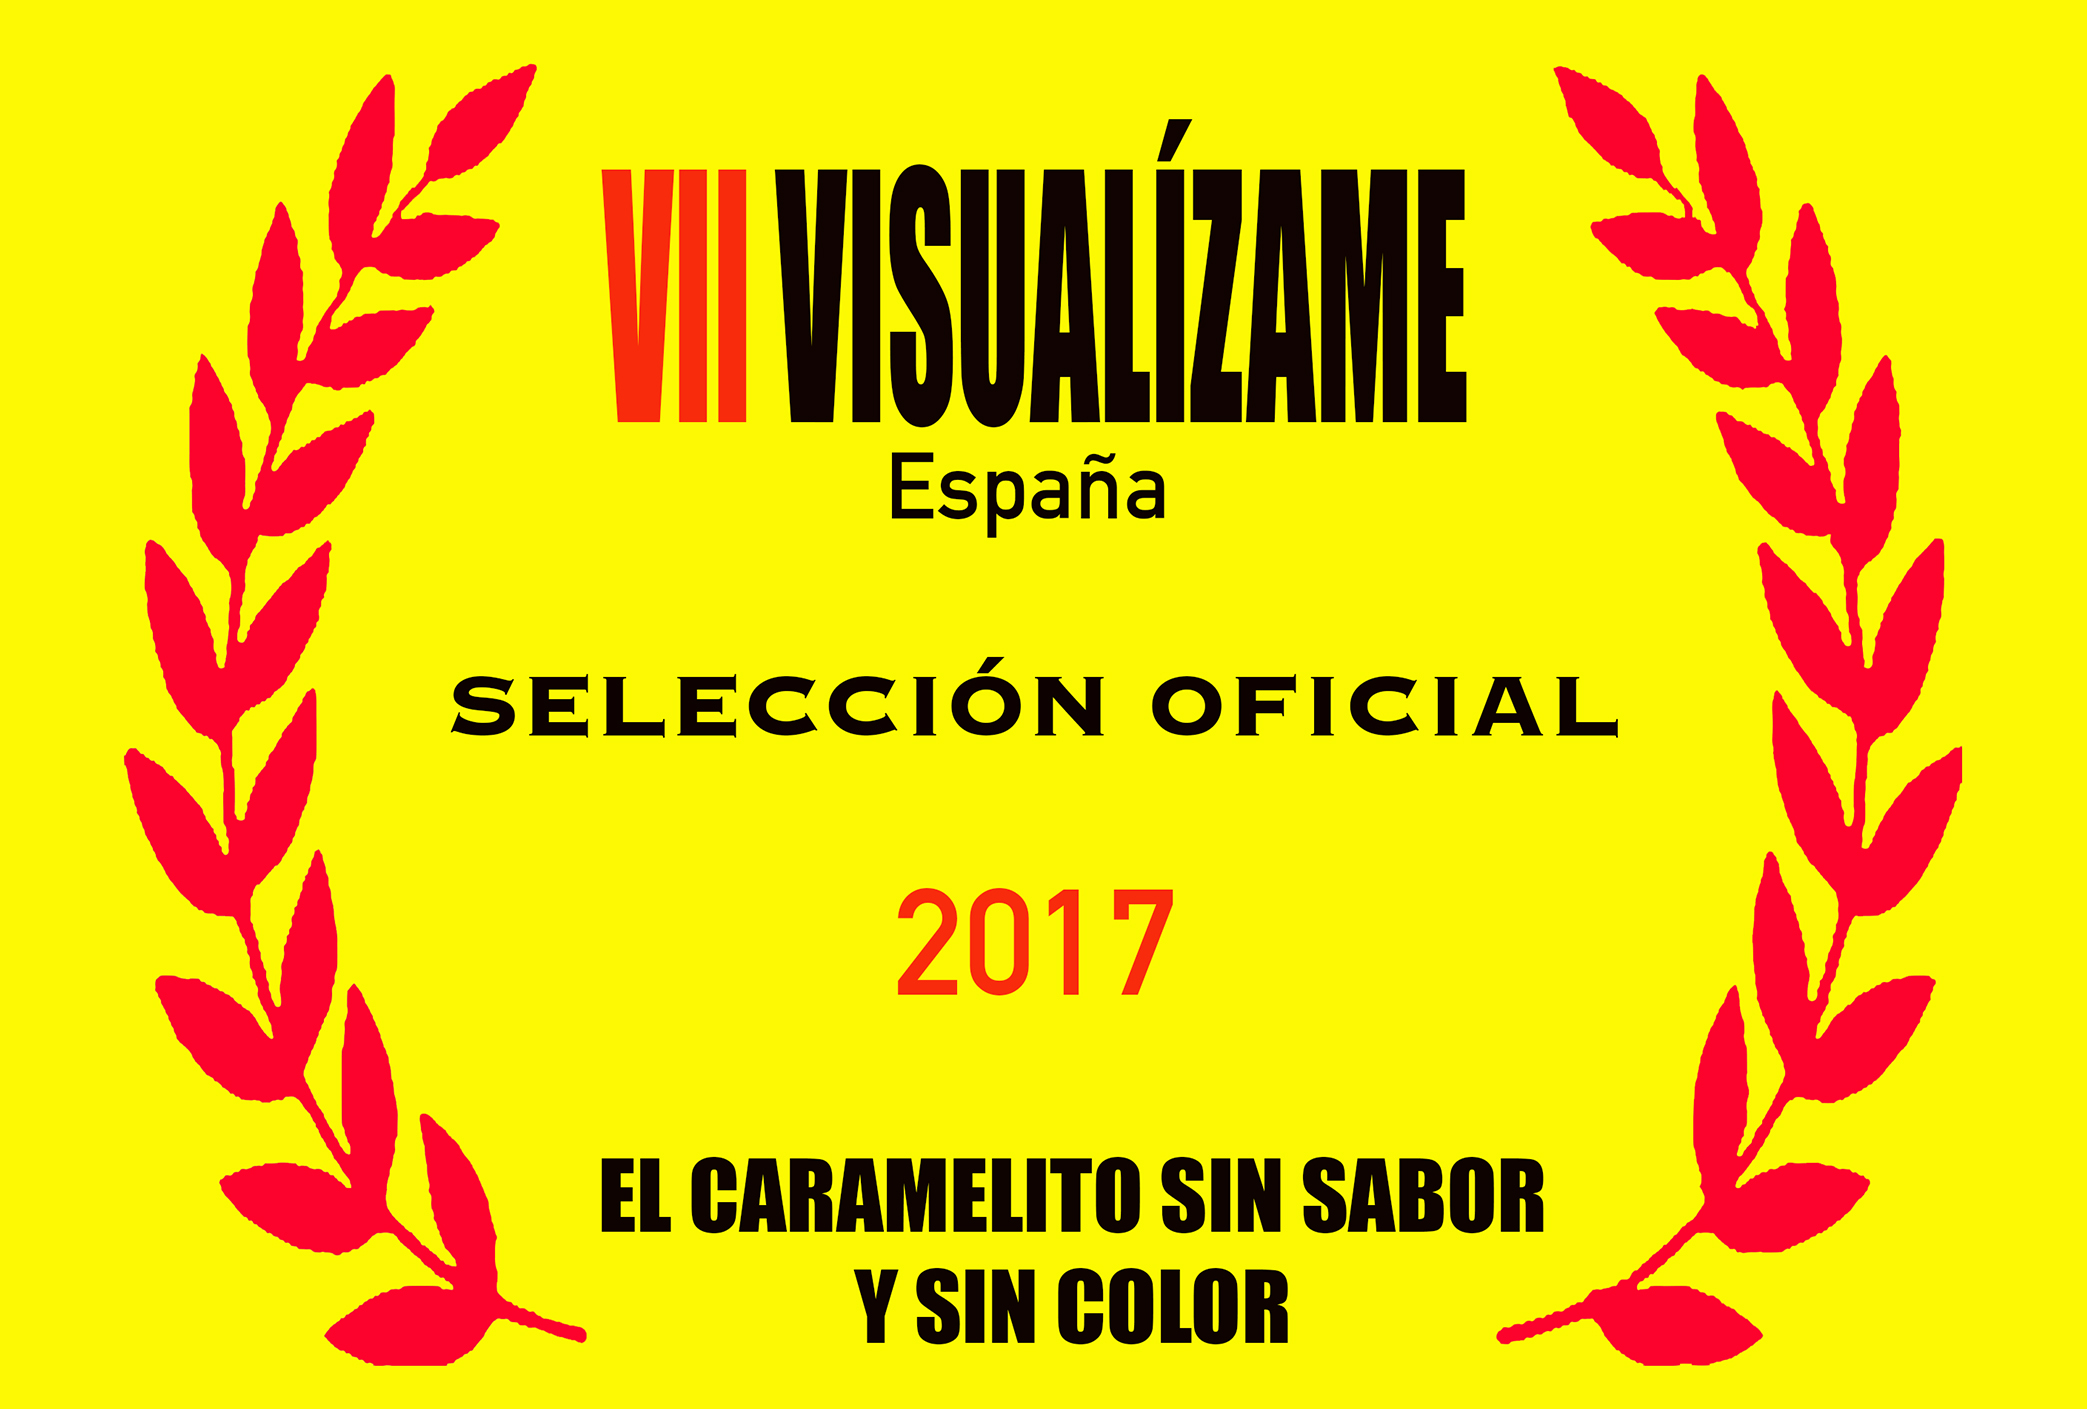 1-LAURELES-VISUALIZAME-ELCARAMELITO